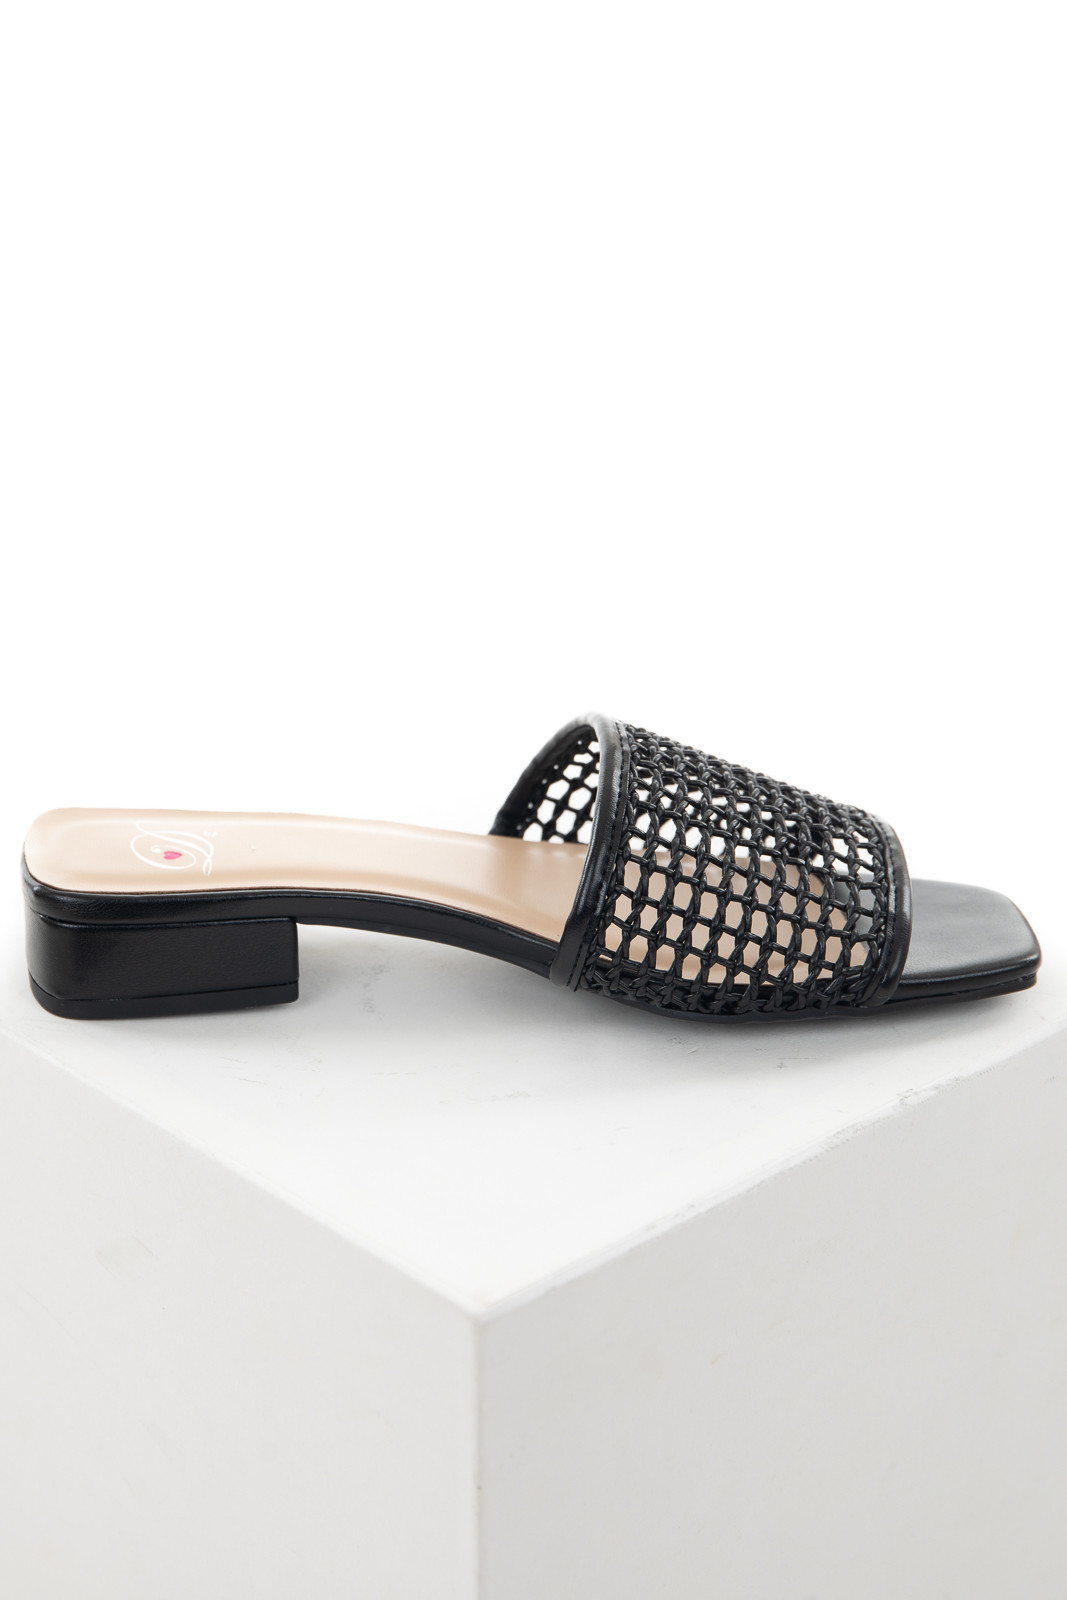 Black Loose Woven Strap Slip On Sandals with Low Heel